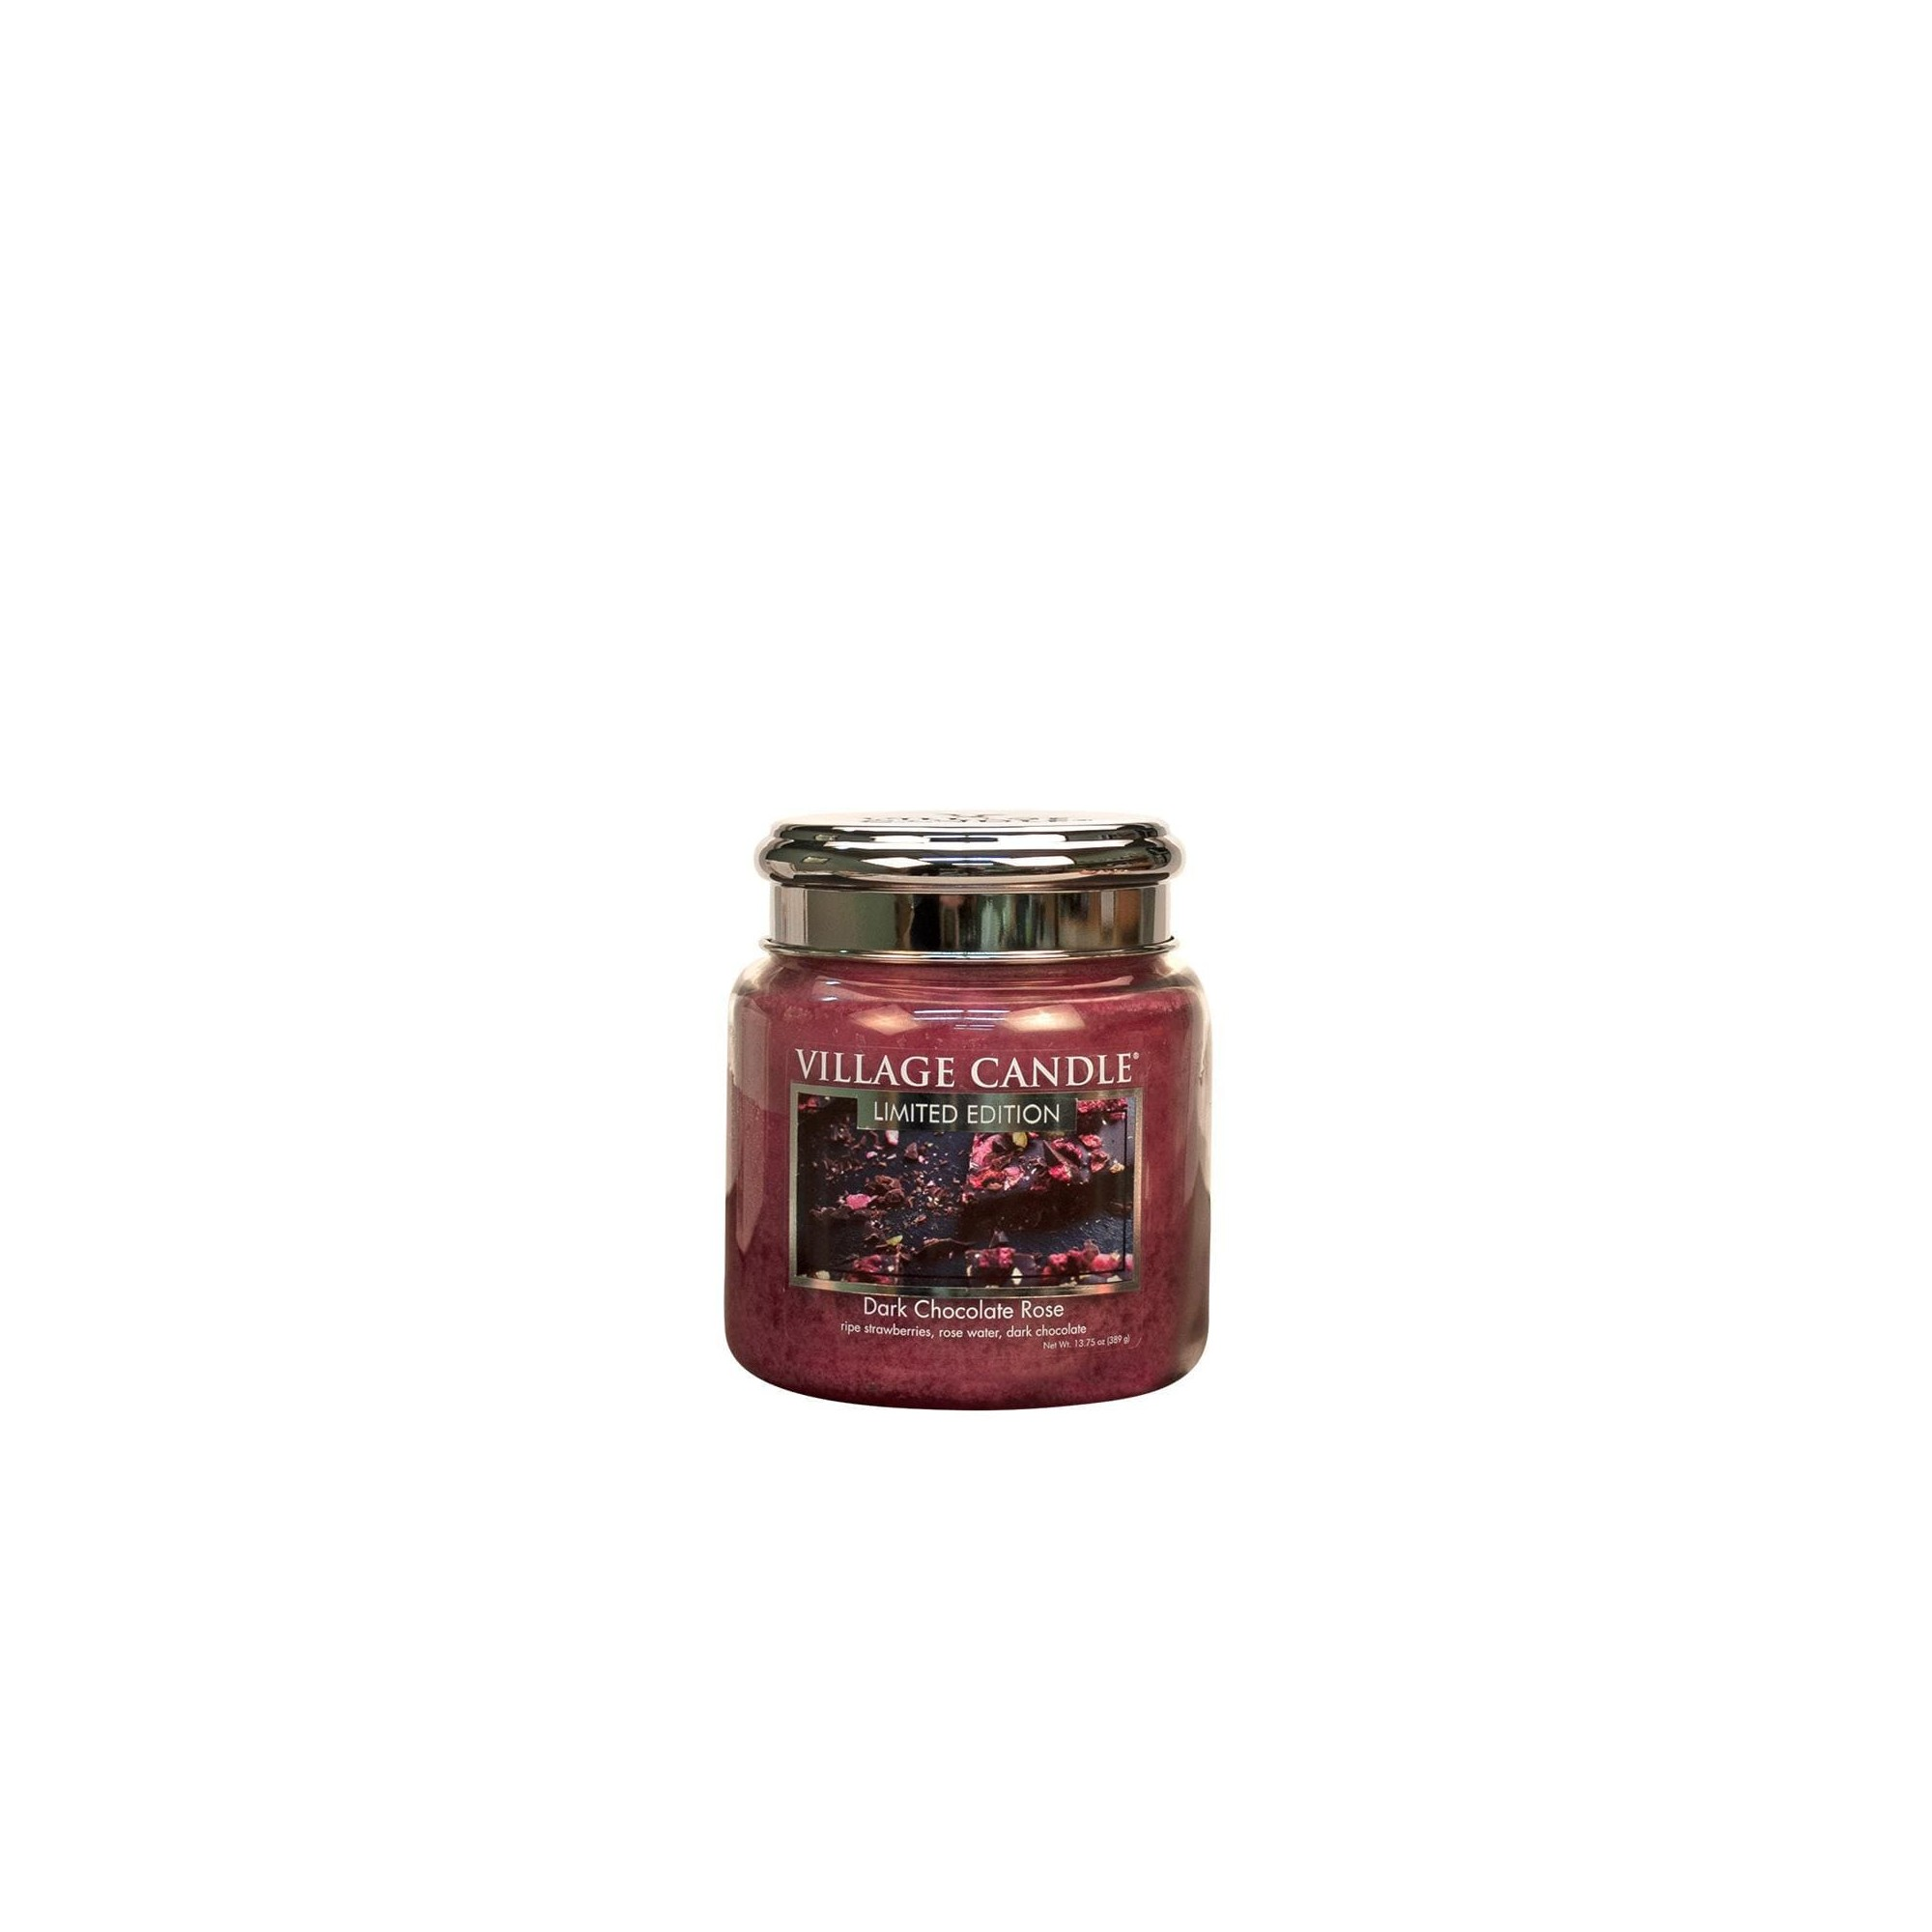 Village Candle Dark Chocolate Rose Medium Glass Jar